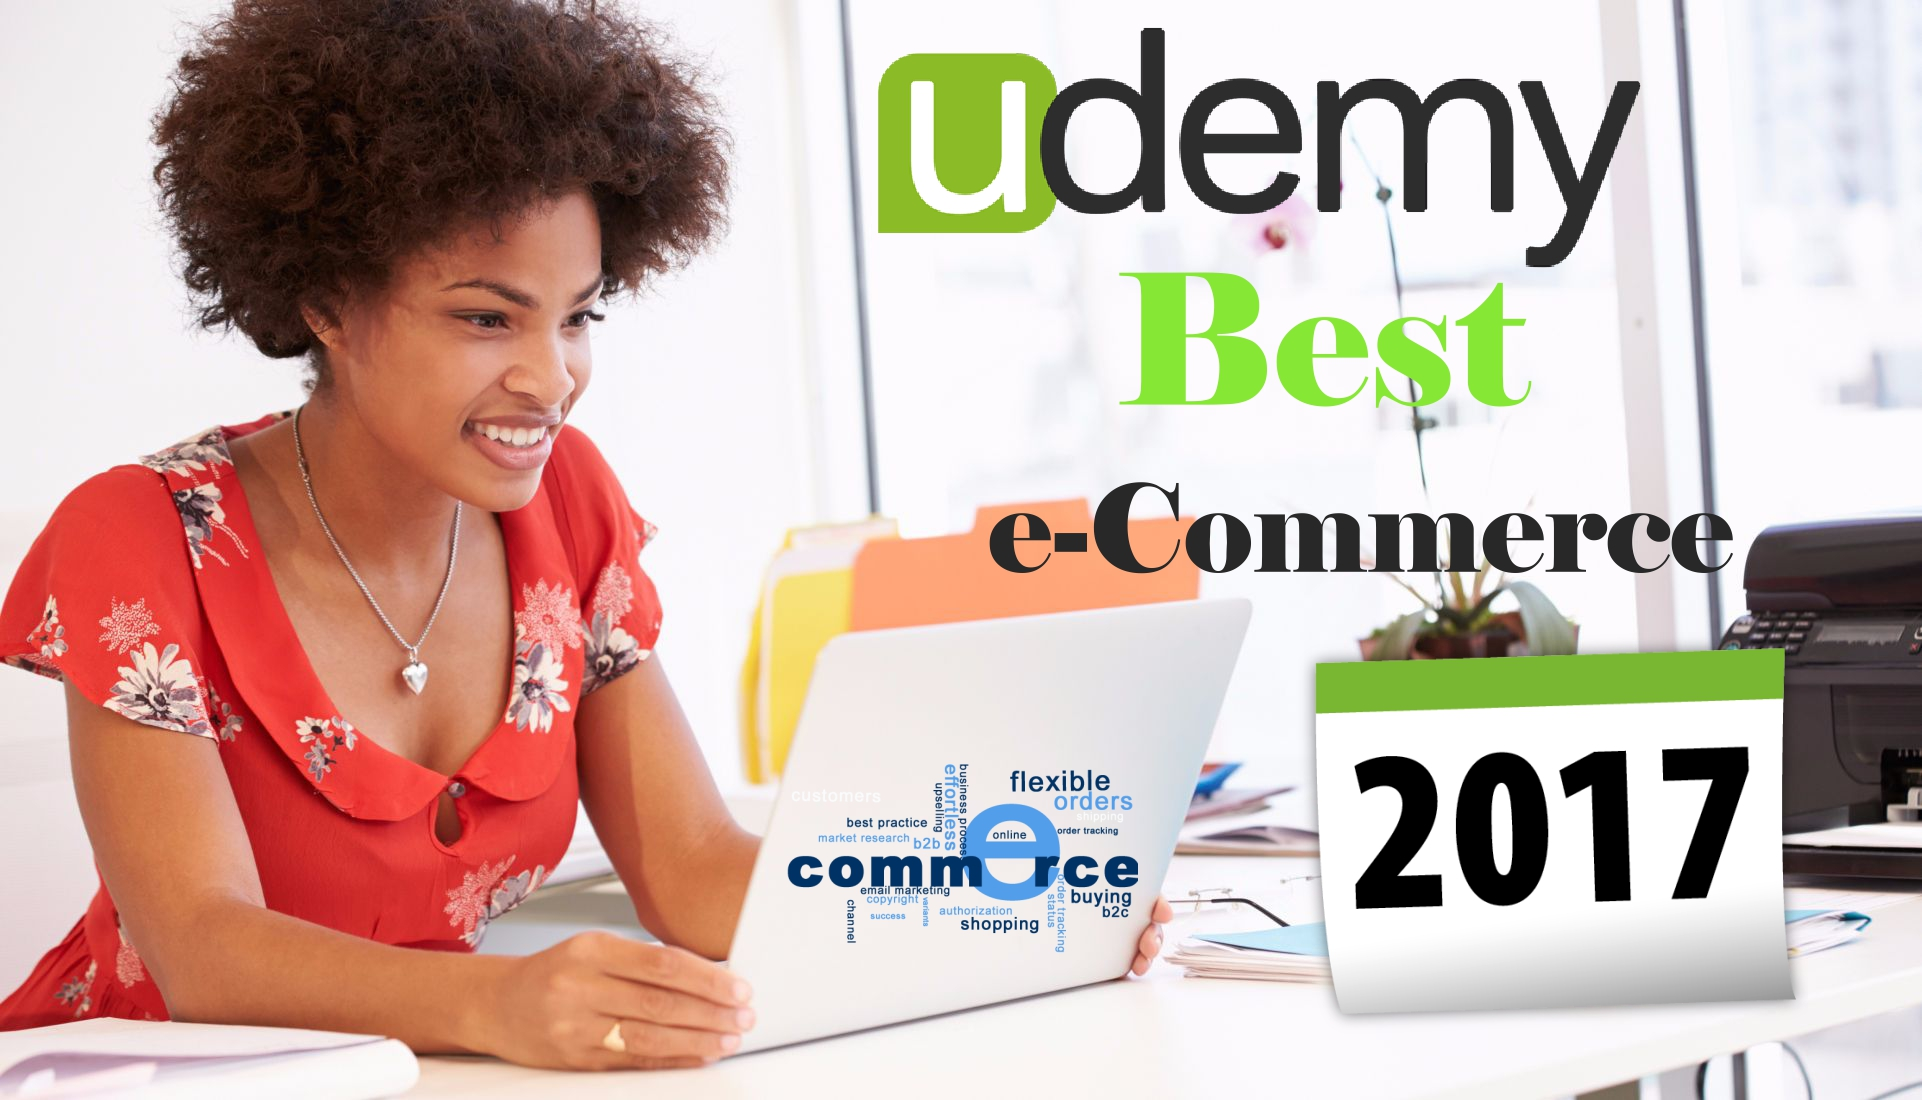 Best Udemy e-Commerce Courses For 2017